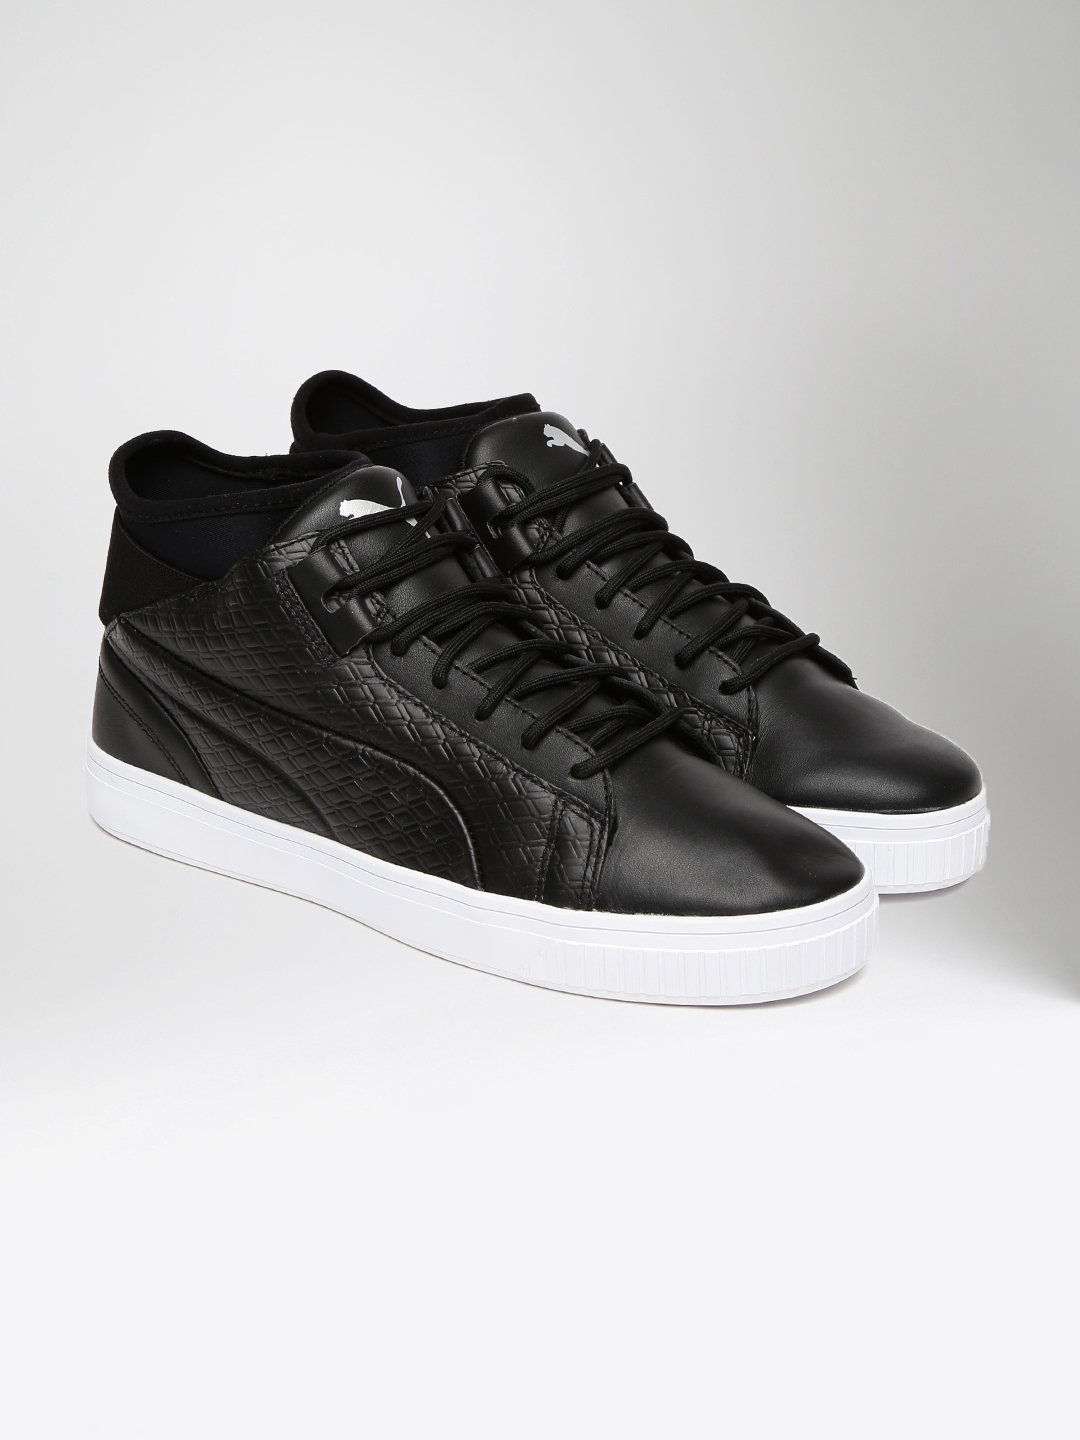 355601908386e2 Buy Puma Men Black Textured High Top Play B W Leather Sneakers ...